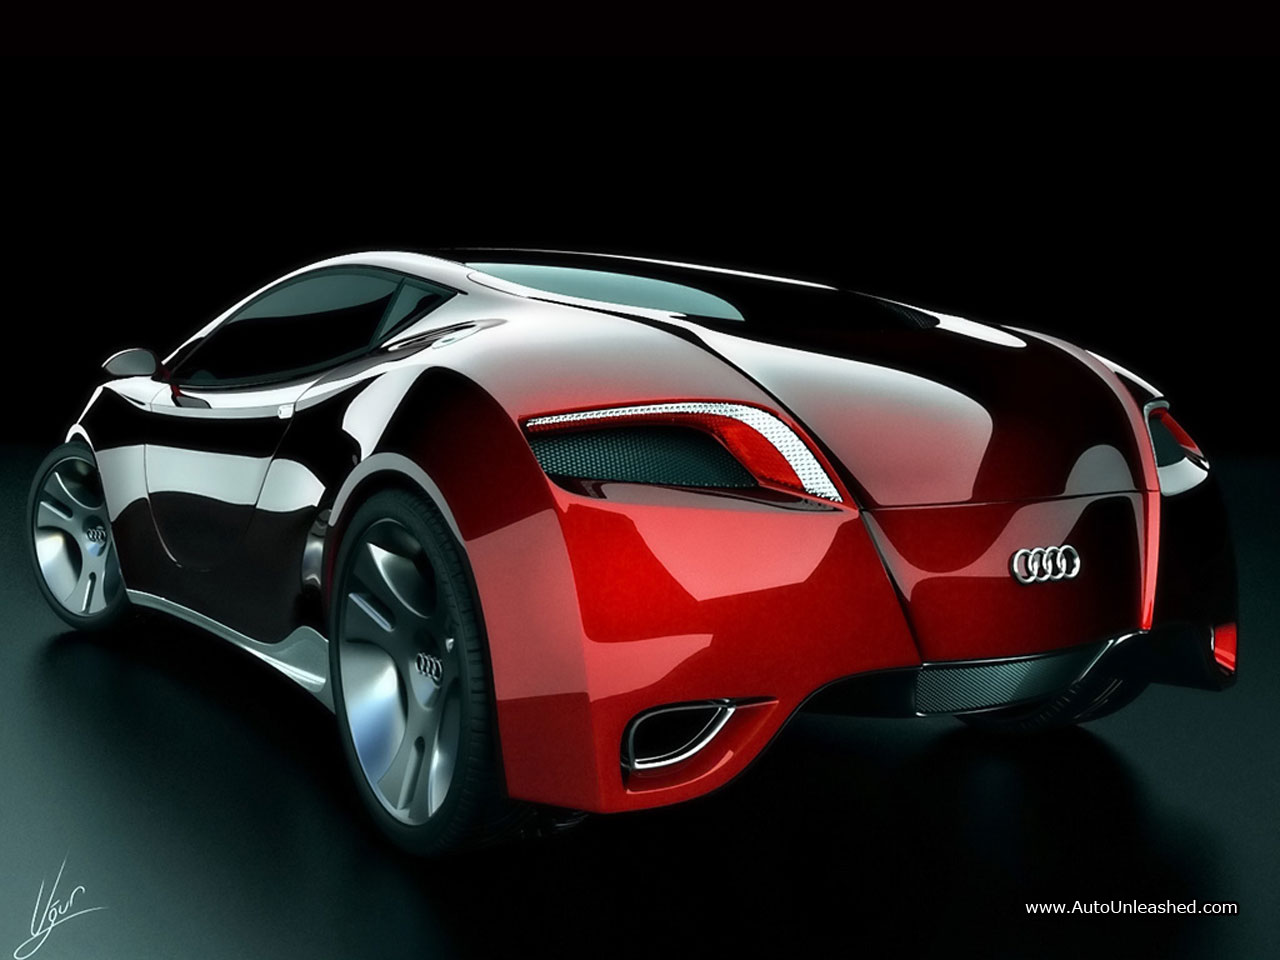 Concept car wallpaper |Its My Car Club